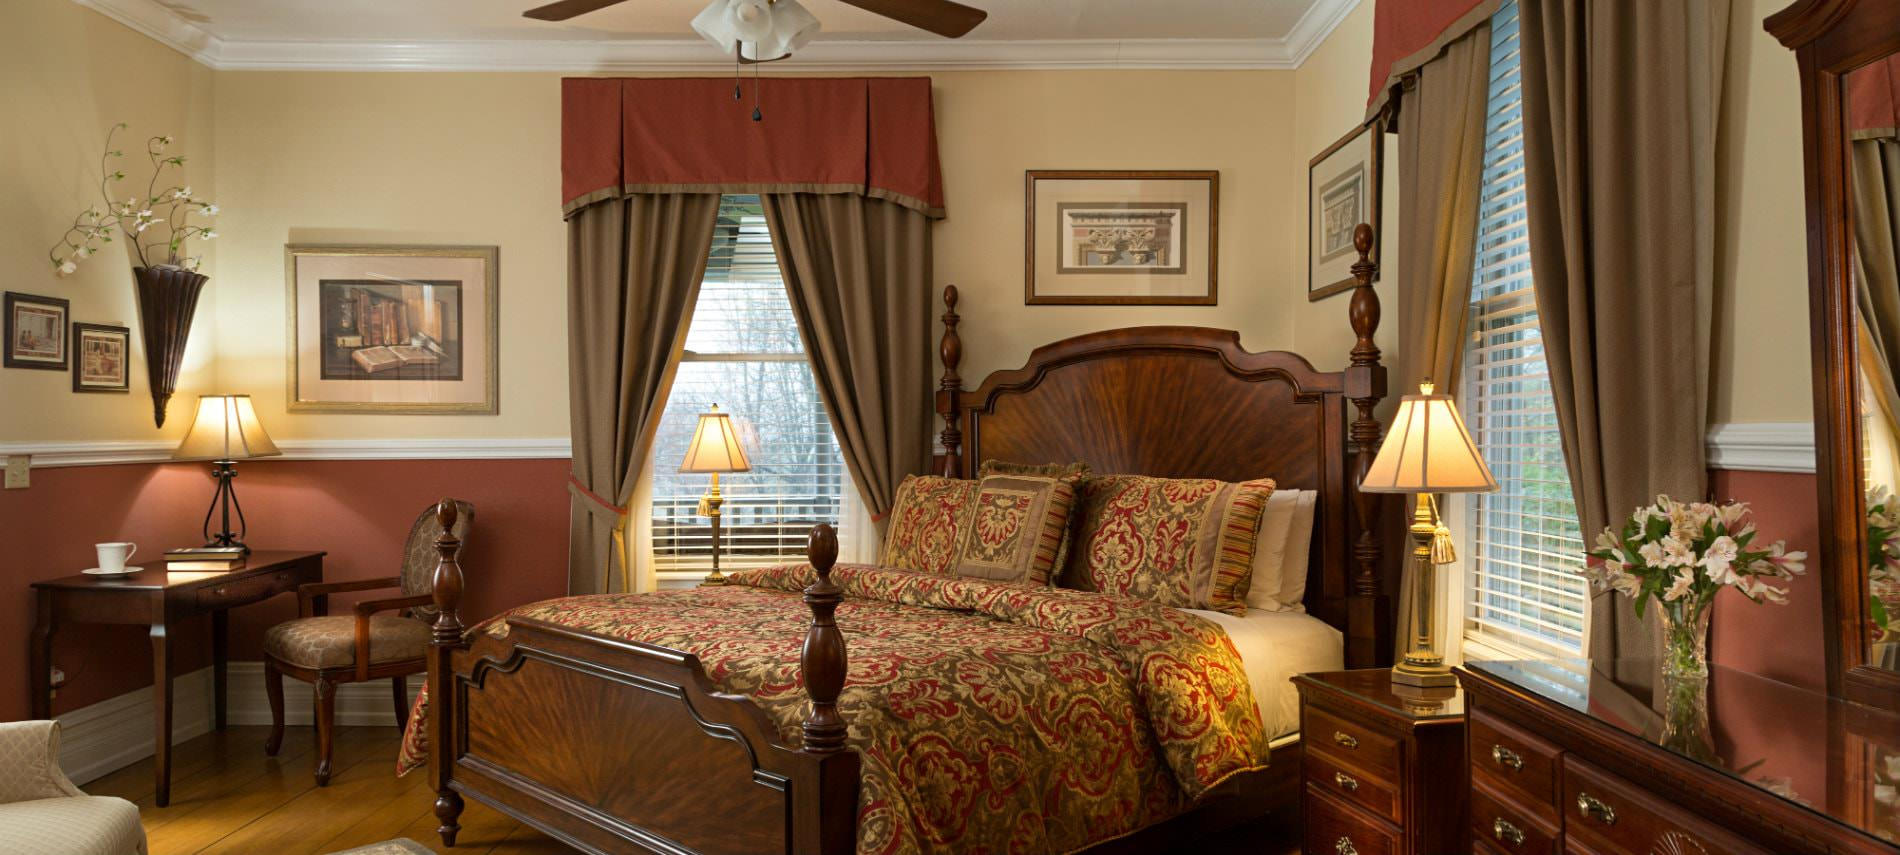 Jacuzzi Suite For Romantic Smoky Mountain Vacation In Asheville Nc Area